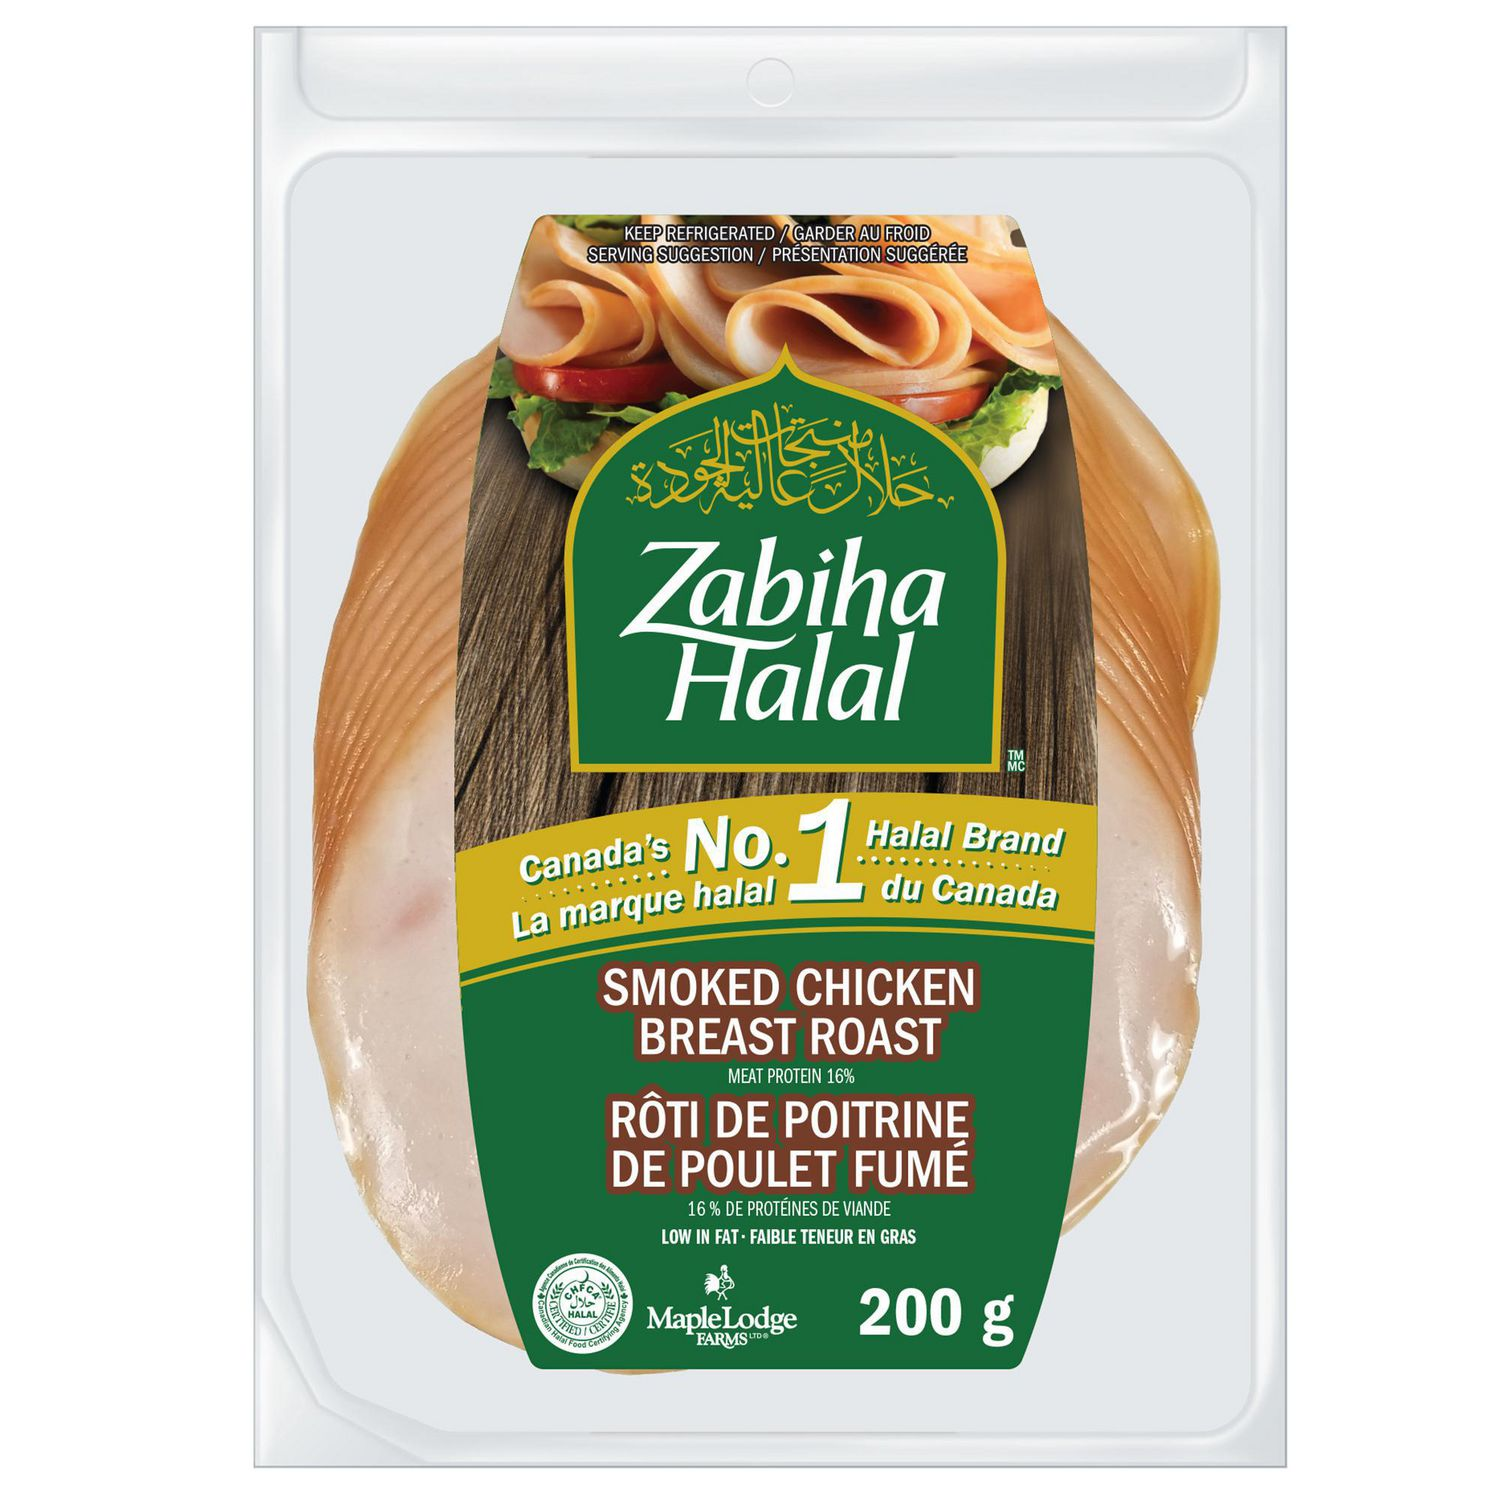 Zabiha Halal Smoked Chicken Breast Roast